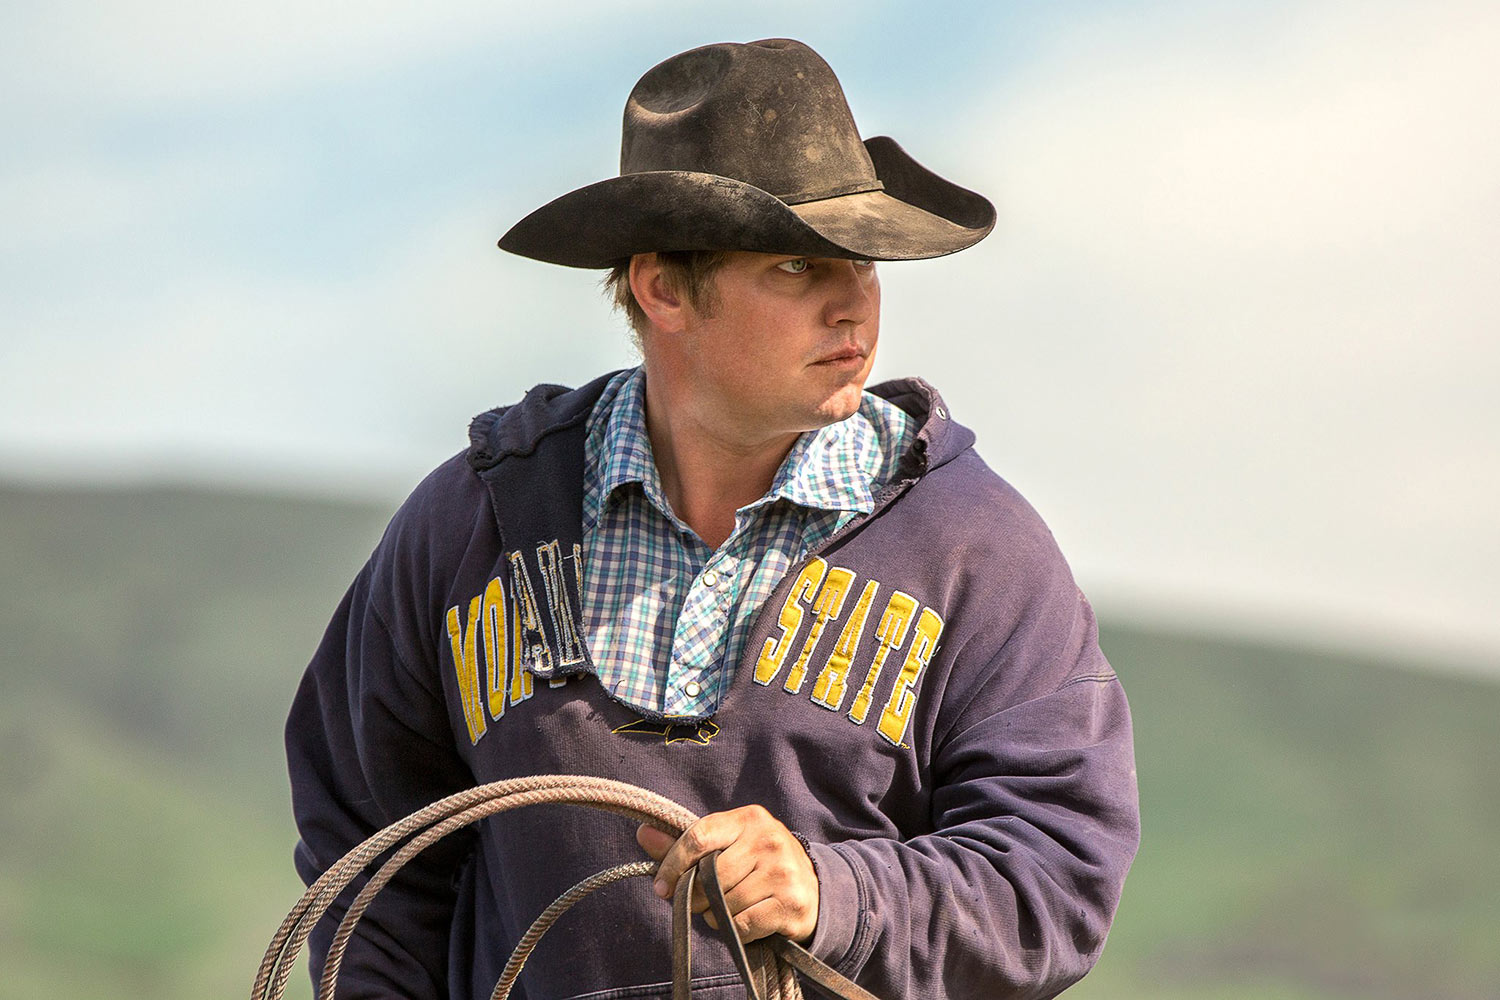 A cowboy wearing a torn Montana State University sweatshirts ropes cattle on a ranch near Cleveland, Montana .   → License Photo